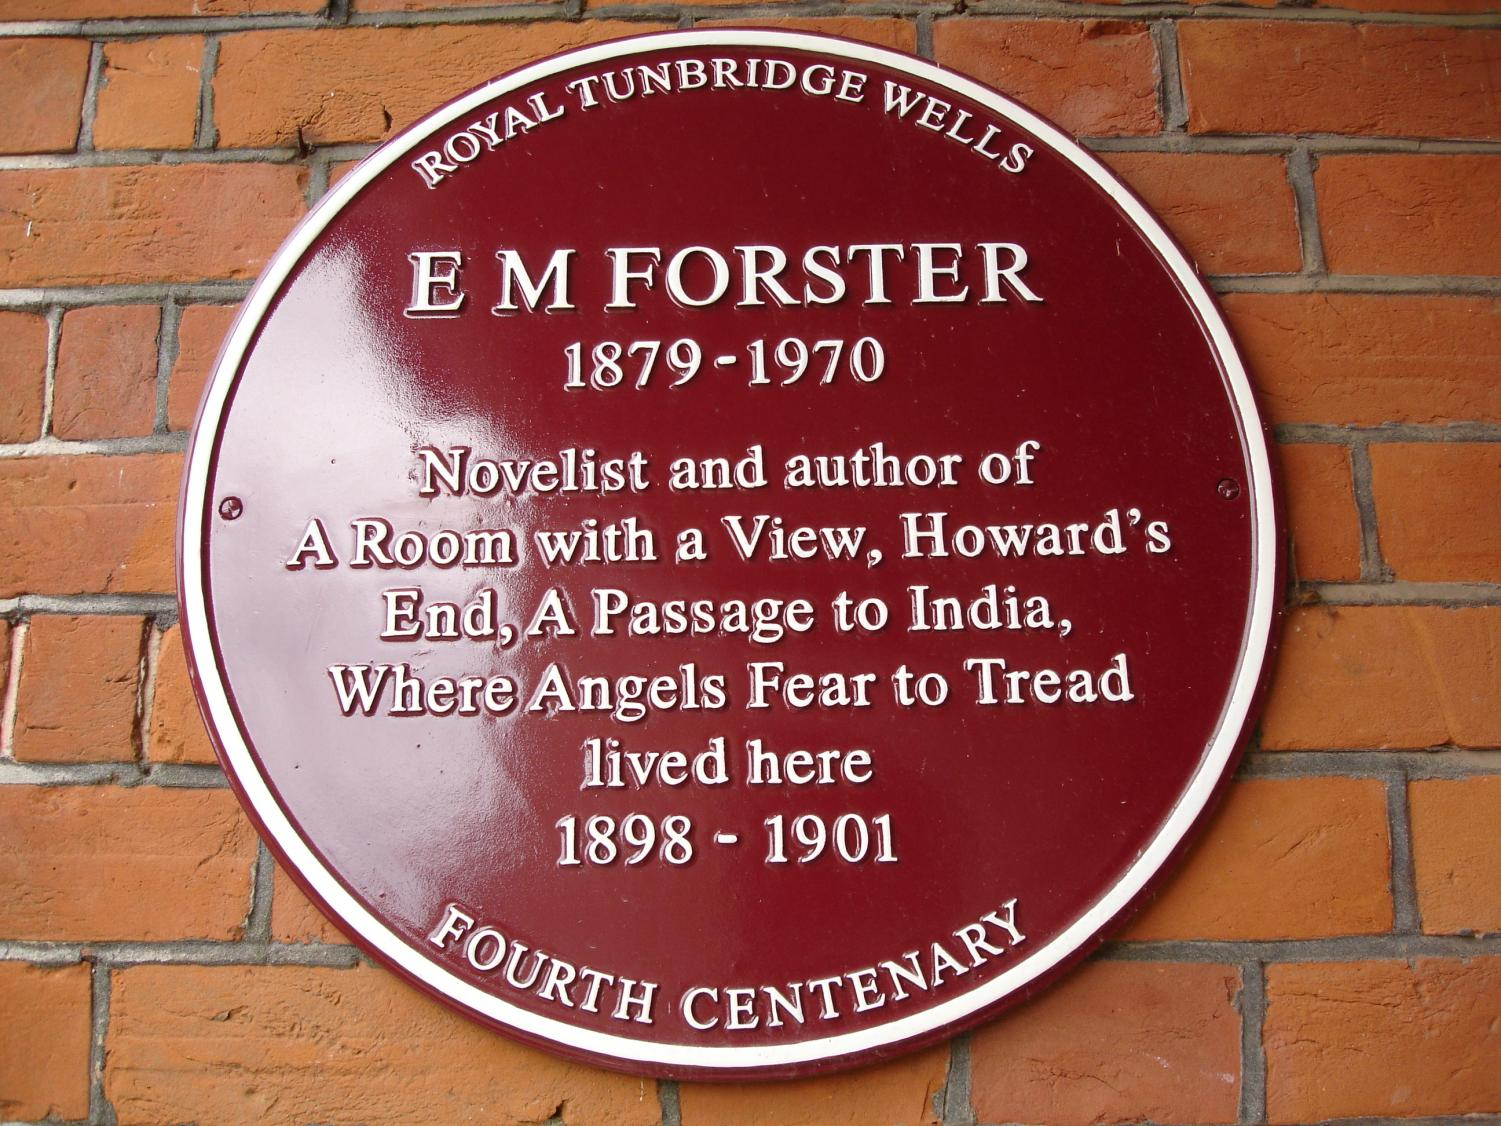 This is a picture that shows the novels that E.M Forster wrote.